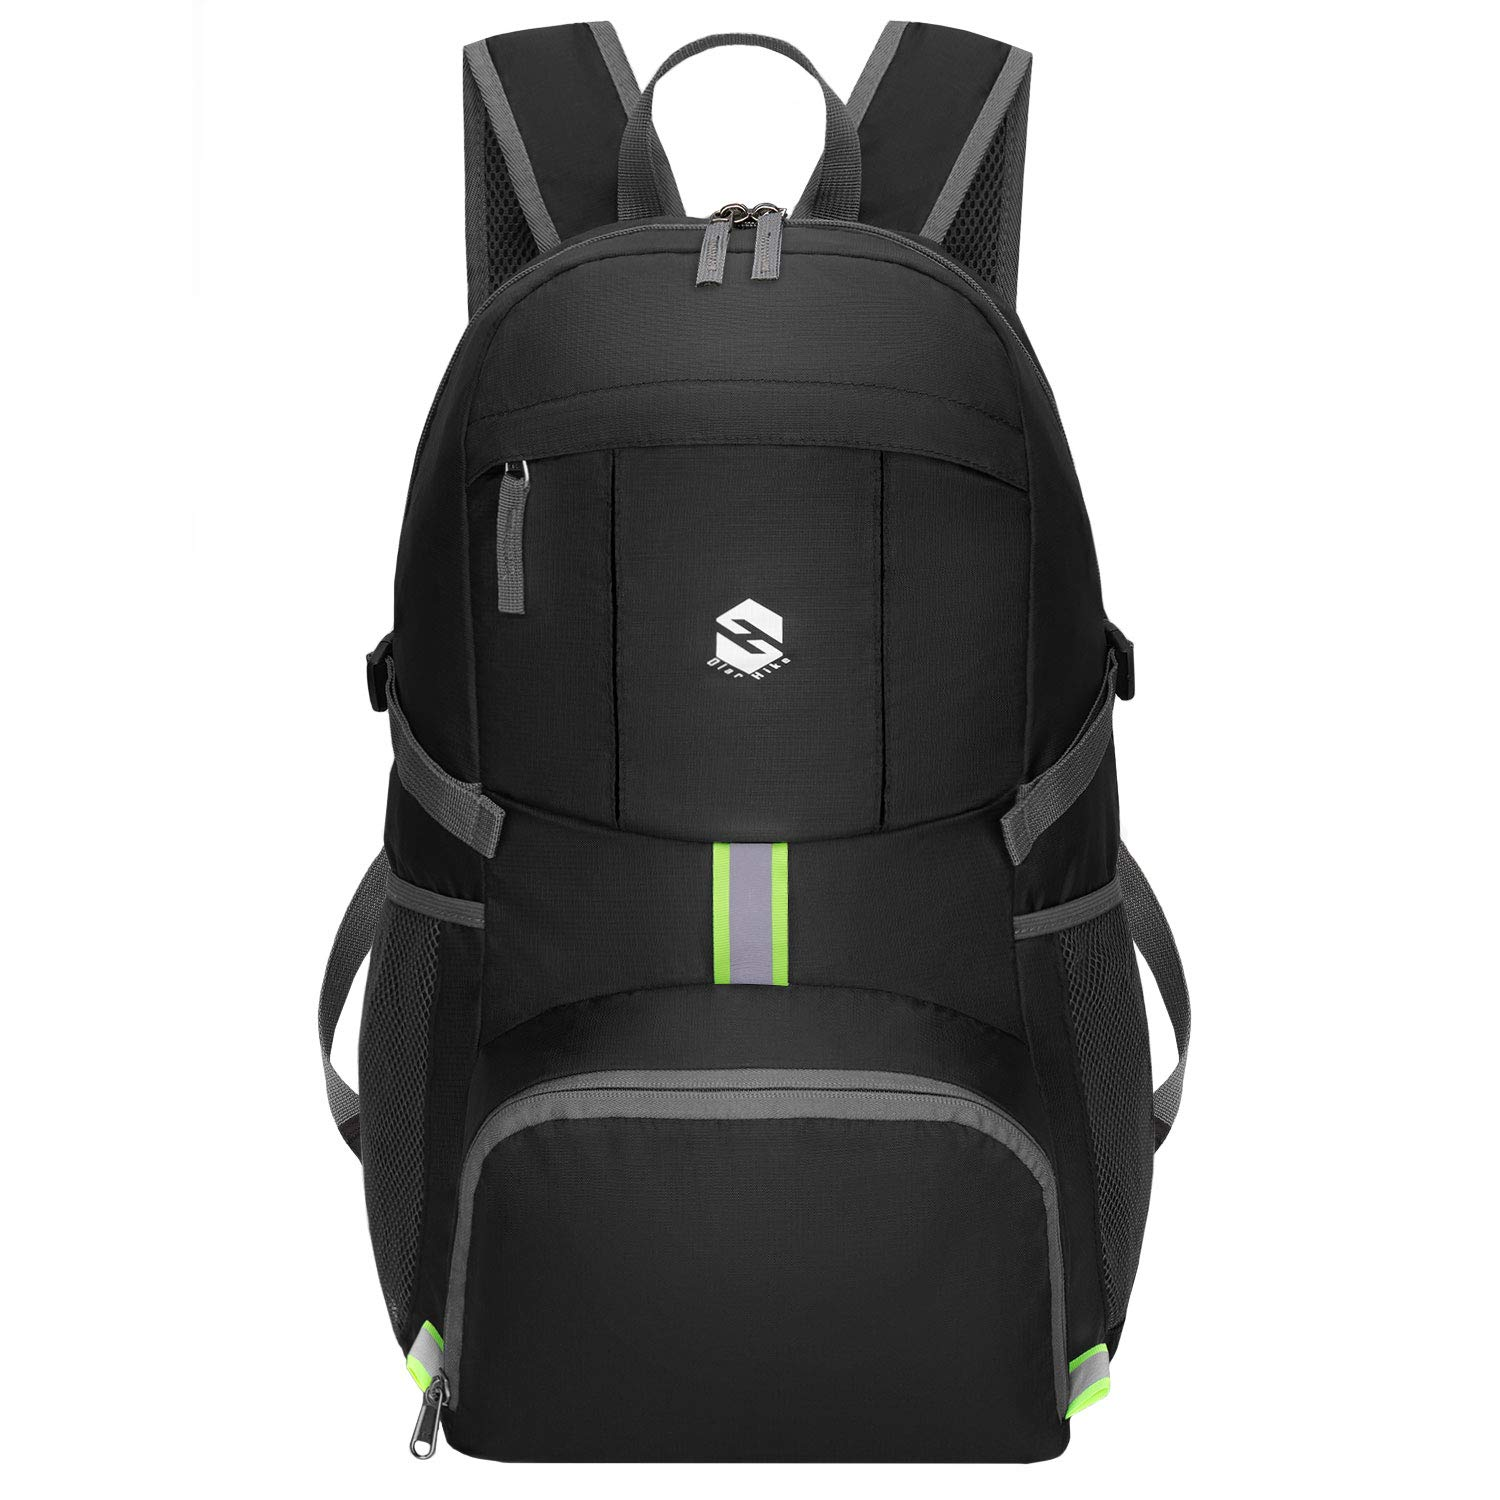 OlarHike Lightweight Travel Hiking Backpack, Packable Daypack with Reflective Stripe Water Resistant Hiking Outdoor Camping Backpacks for Men Women by OlarHike